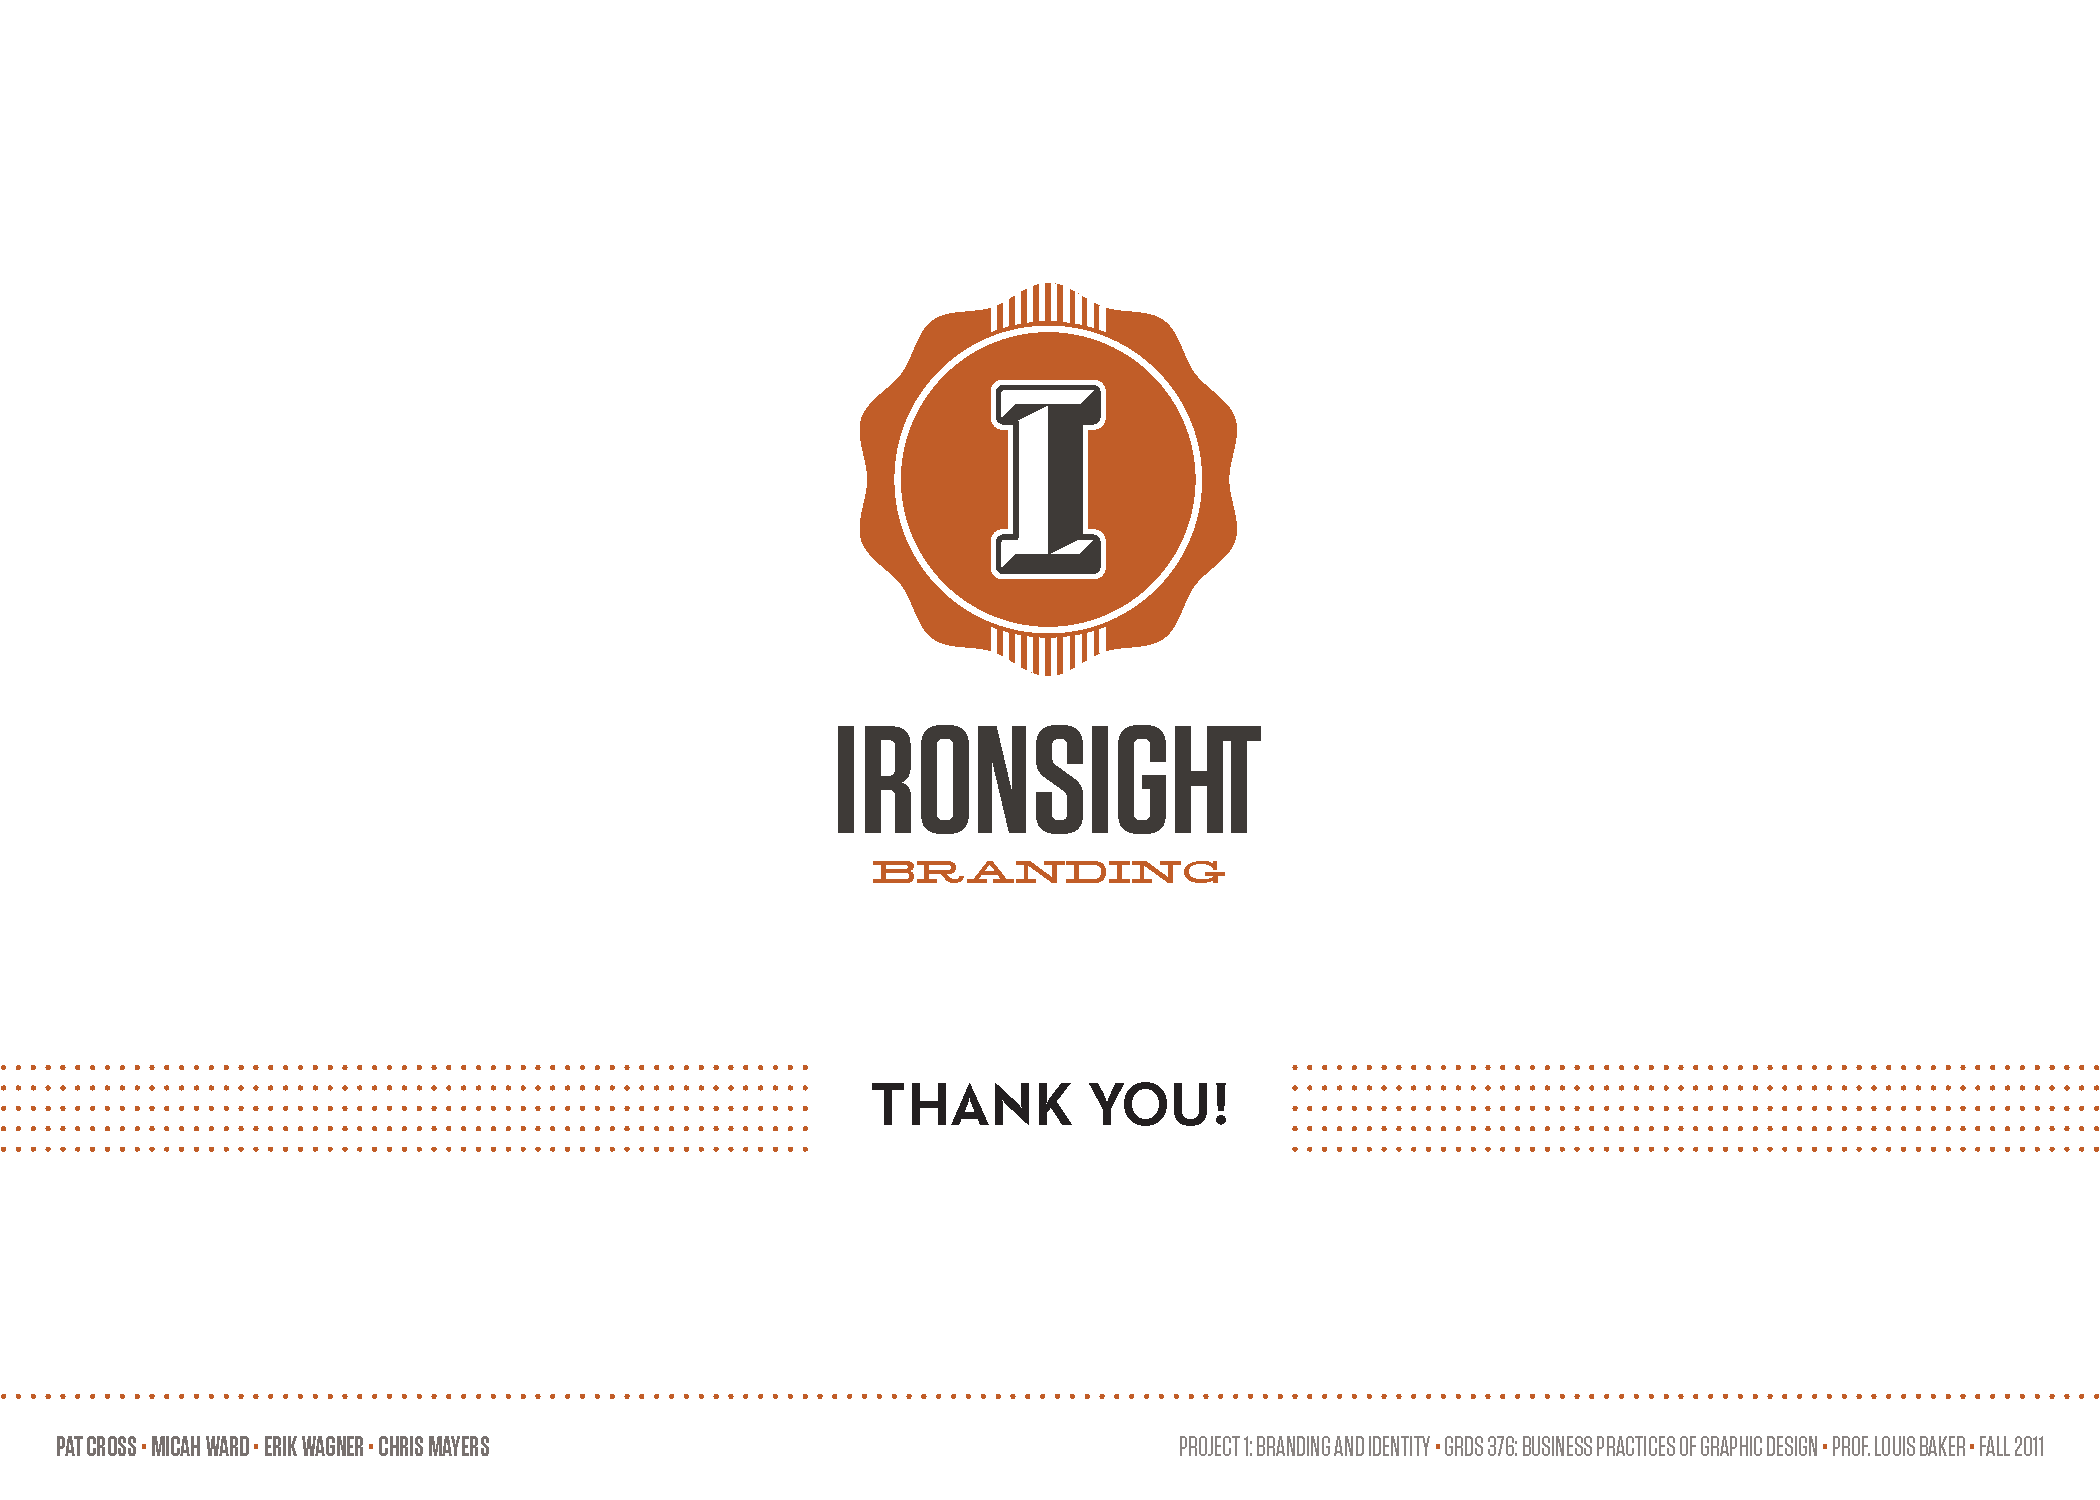 ironsight_branding copy_Page_31.png